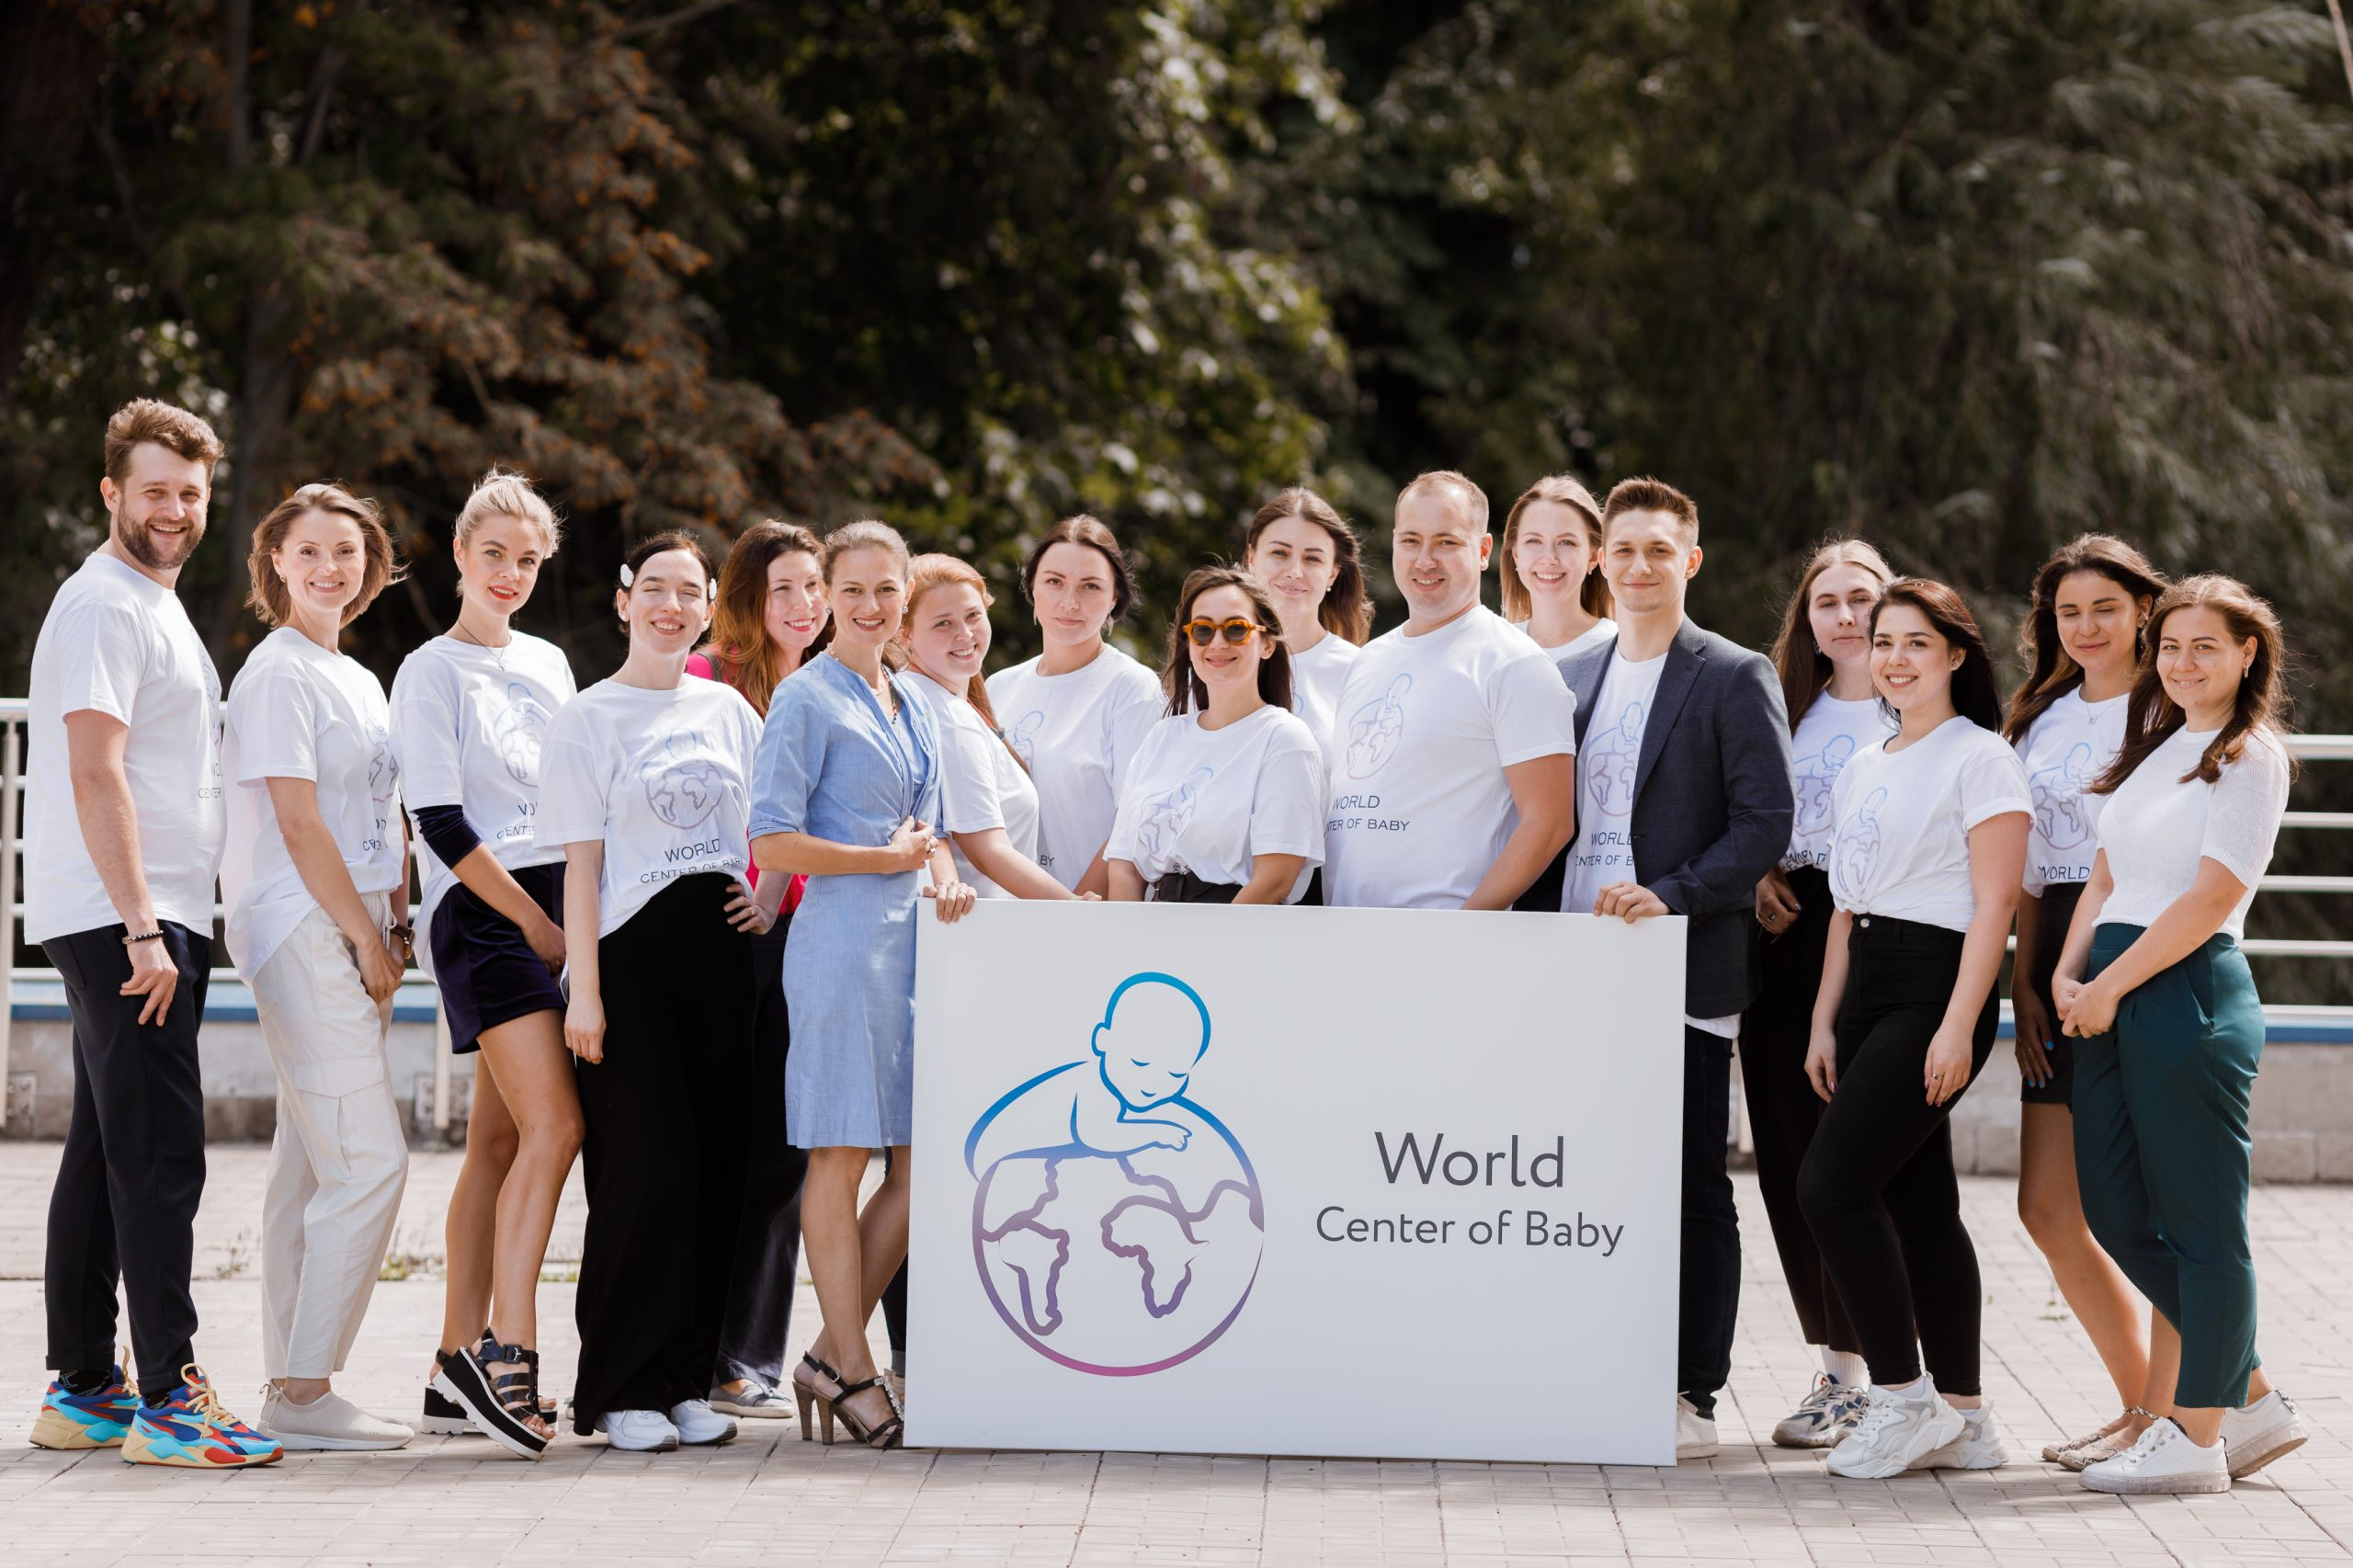 Incontra World Center of Baby